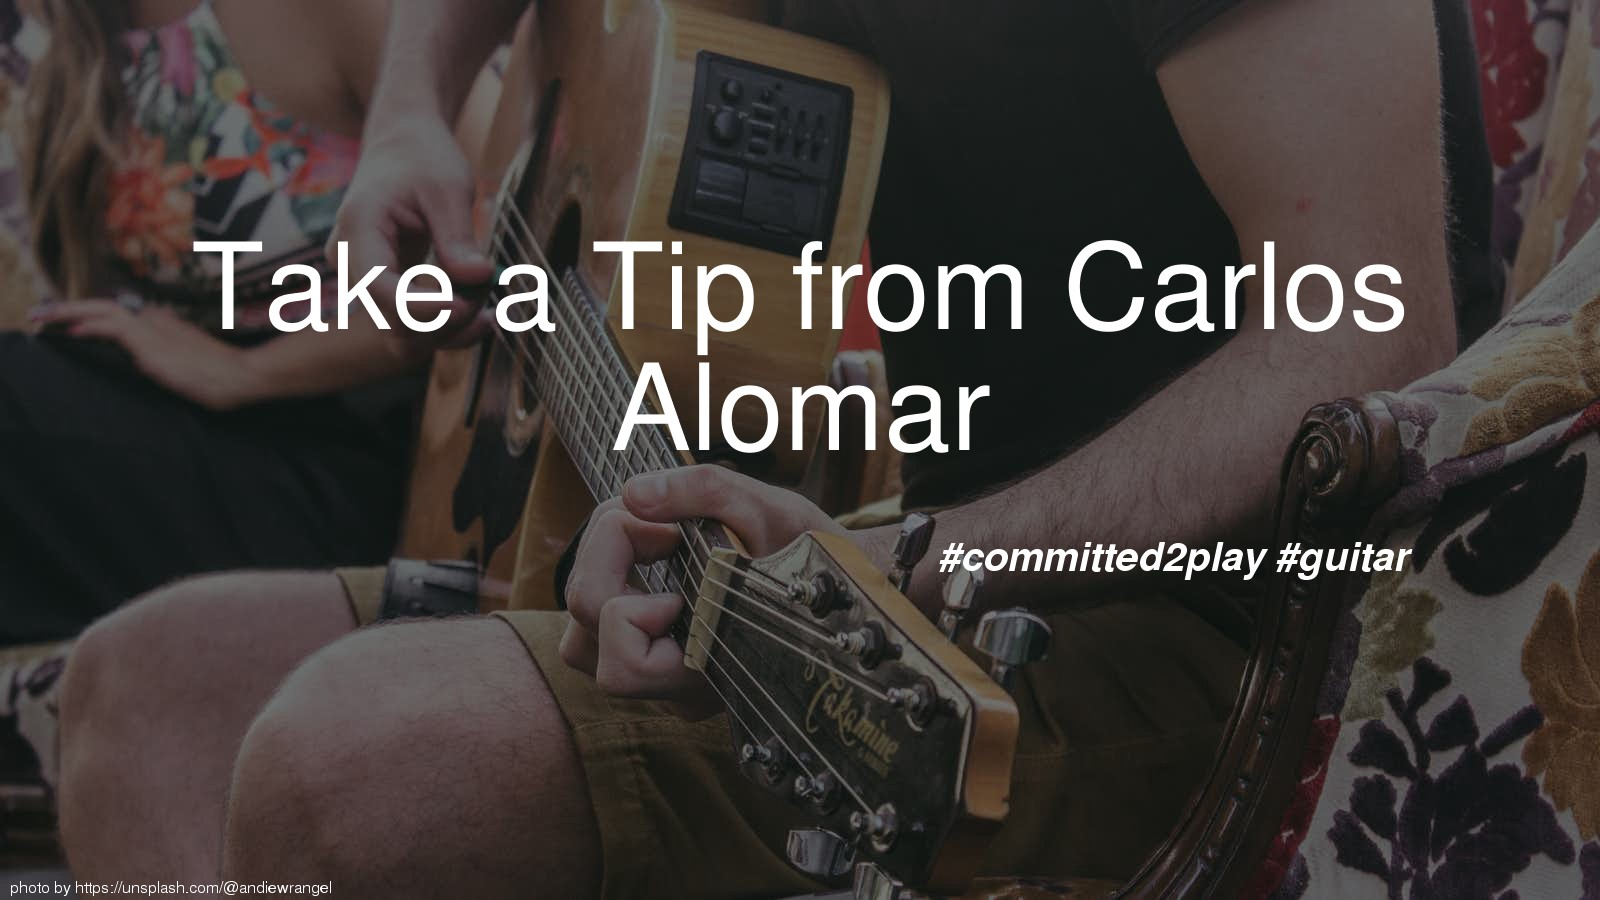 Take a Tip from Carlos Alomar